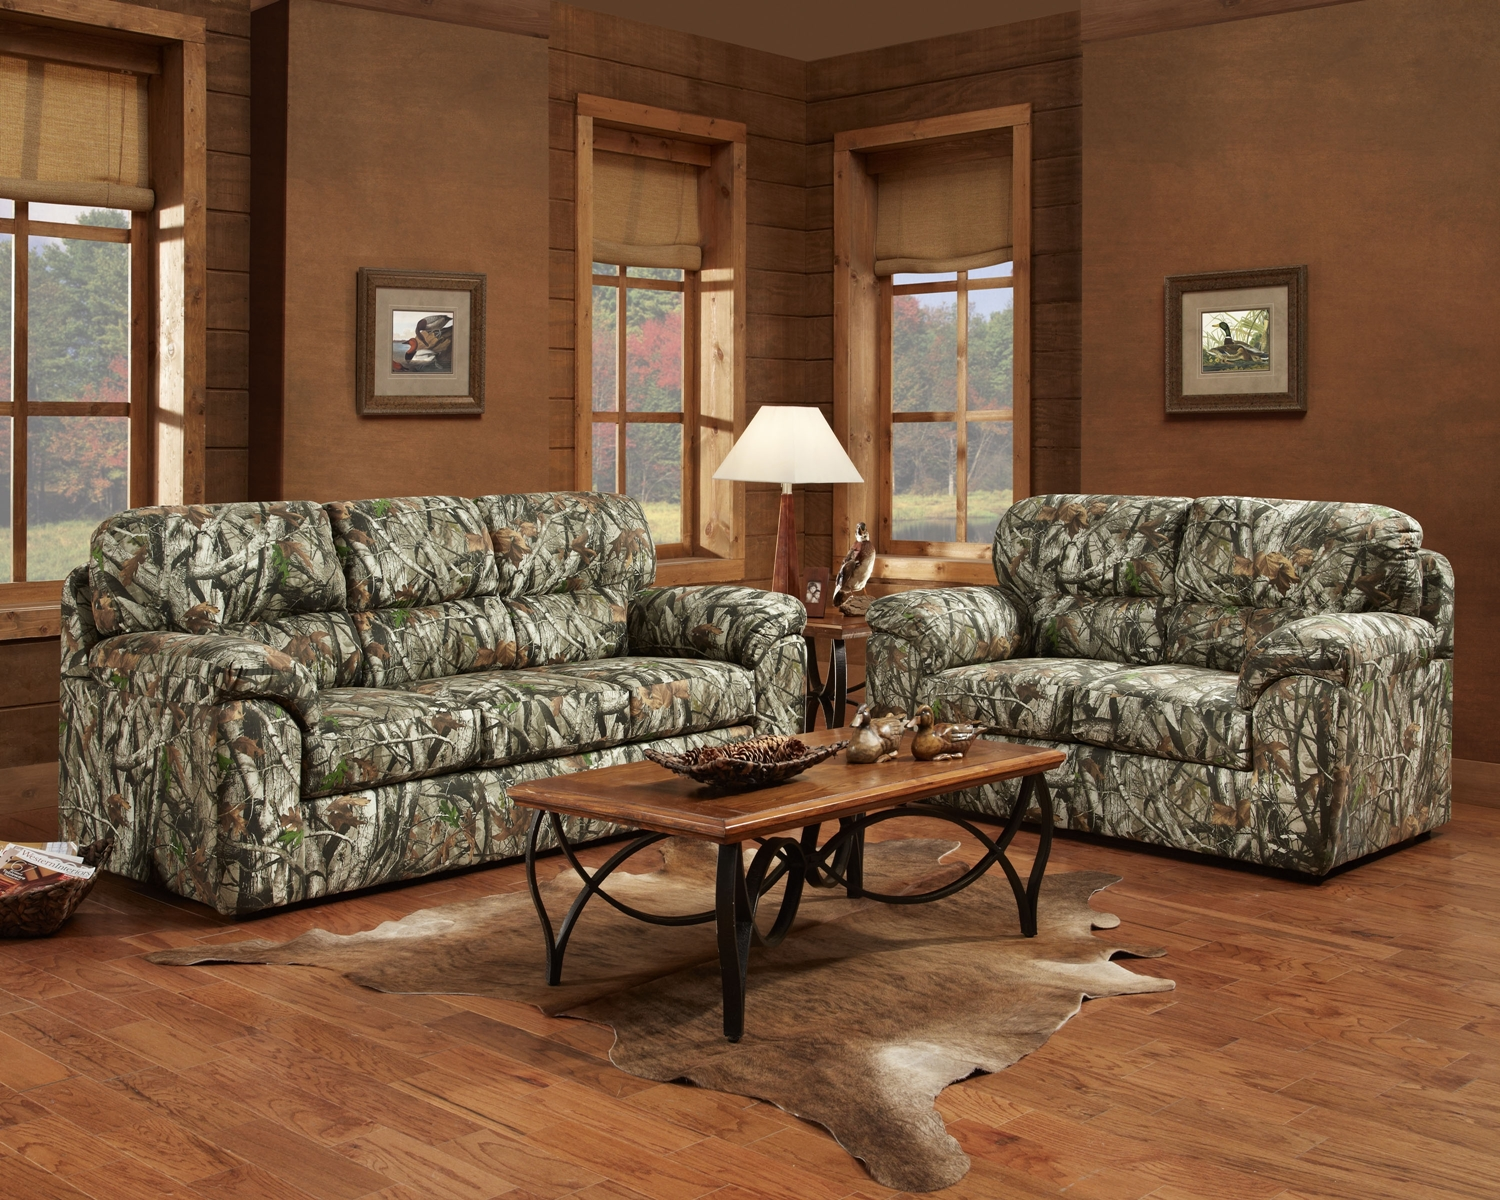 Tagmossy oak living room furniture sets home design 2017